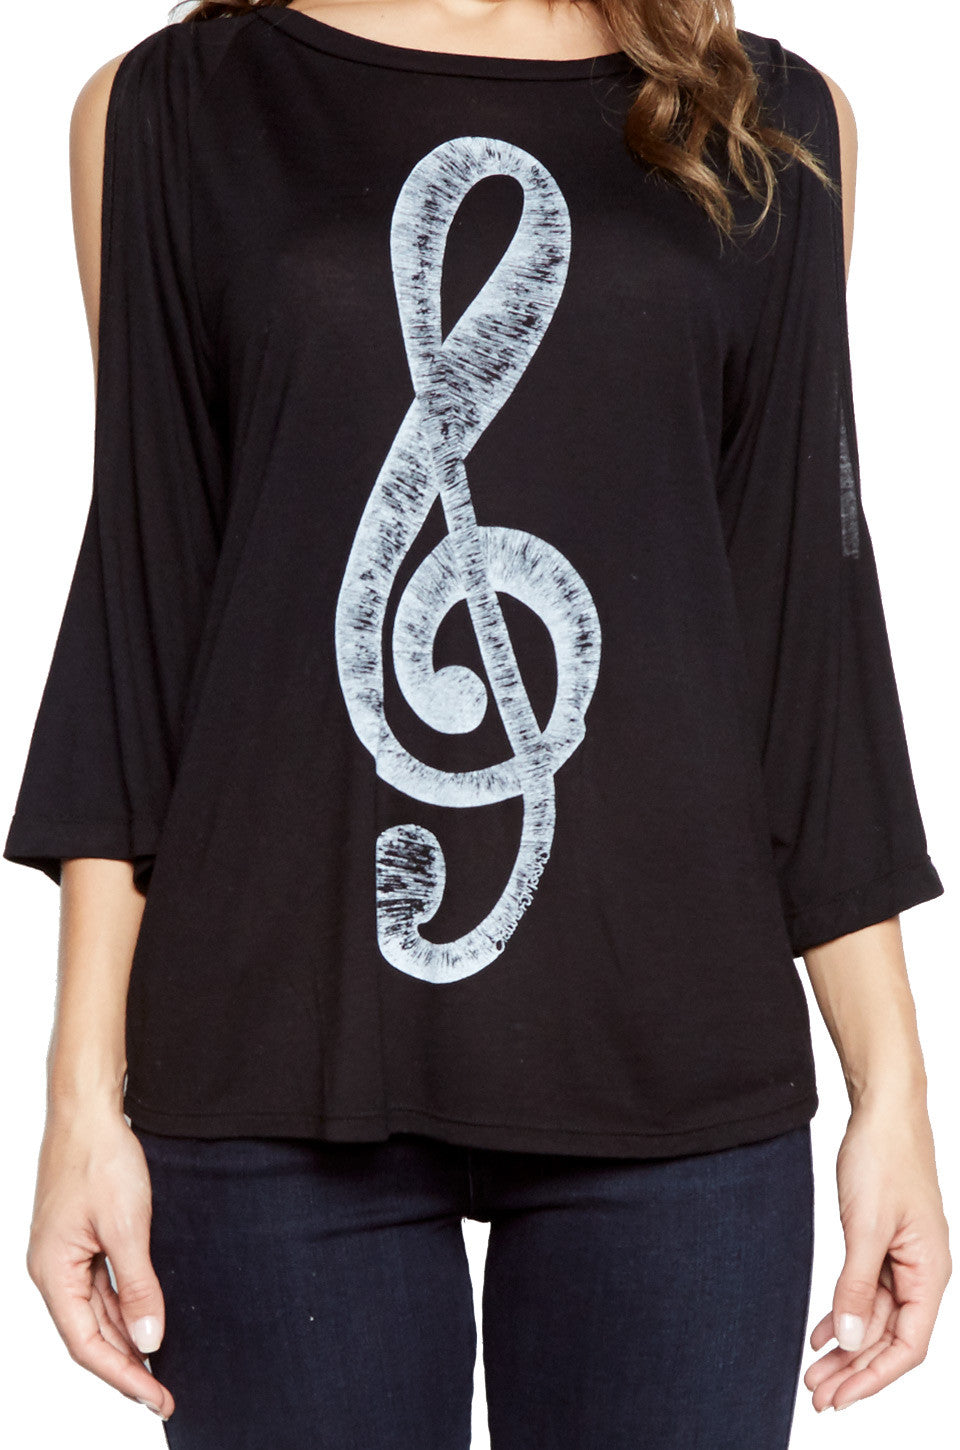 Lauren Moshi Women's Neala Treble Clef 3/4 Bell Slv Open Shoulder Top - Black